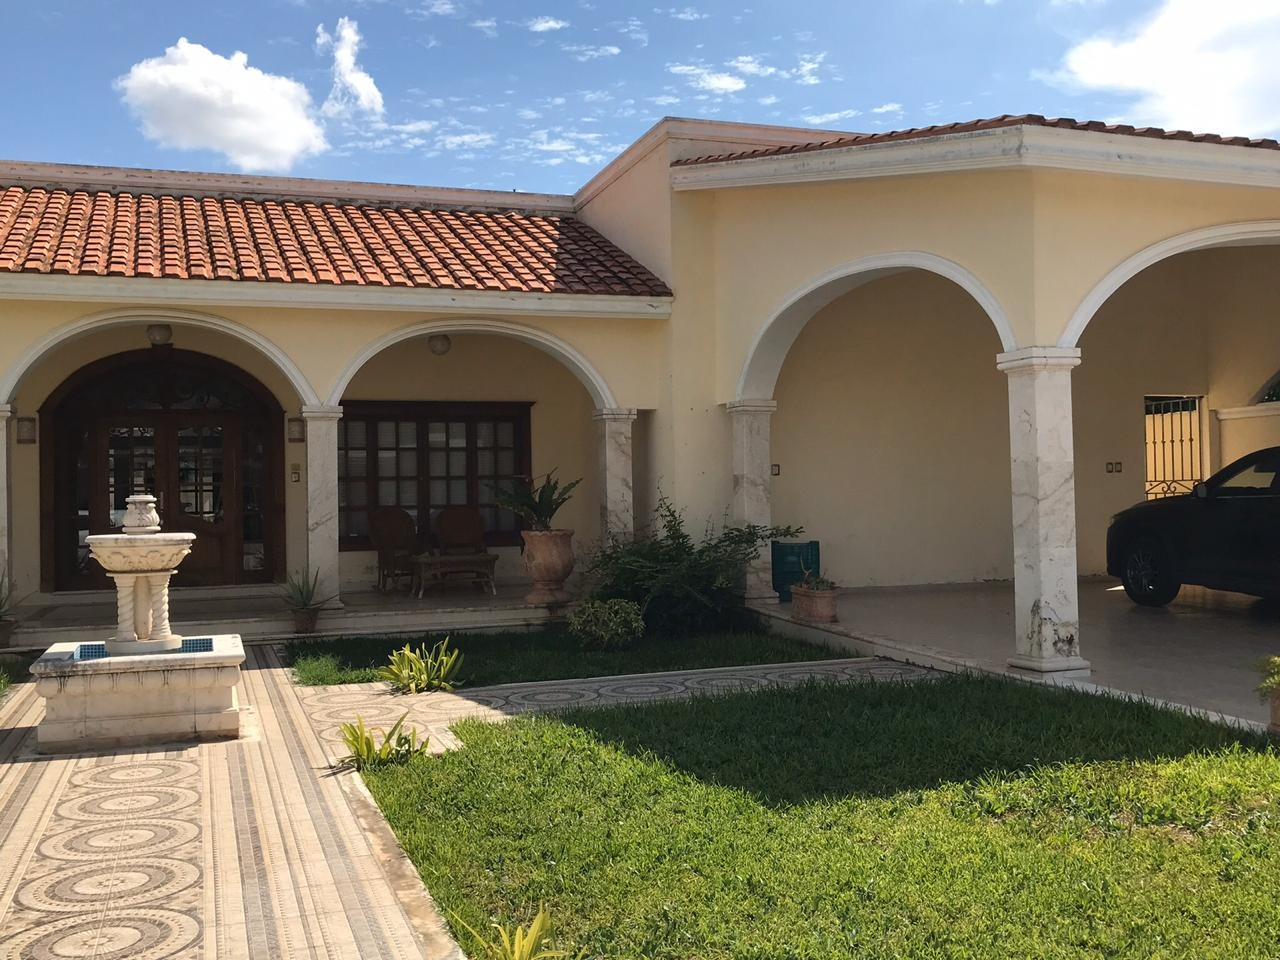 House for sale in Privada del sol, Colonia Mexico Norte